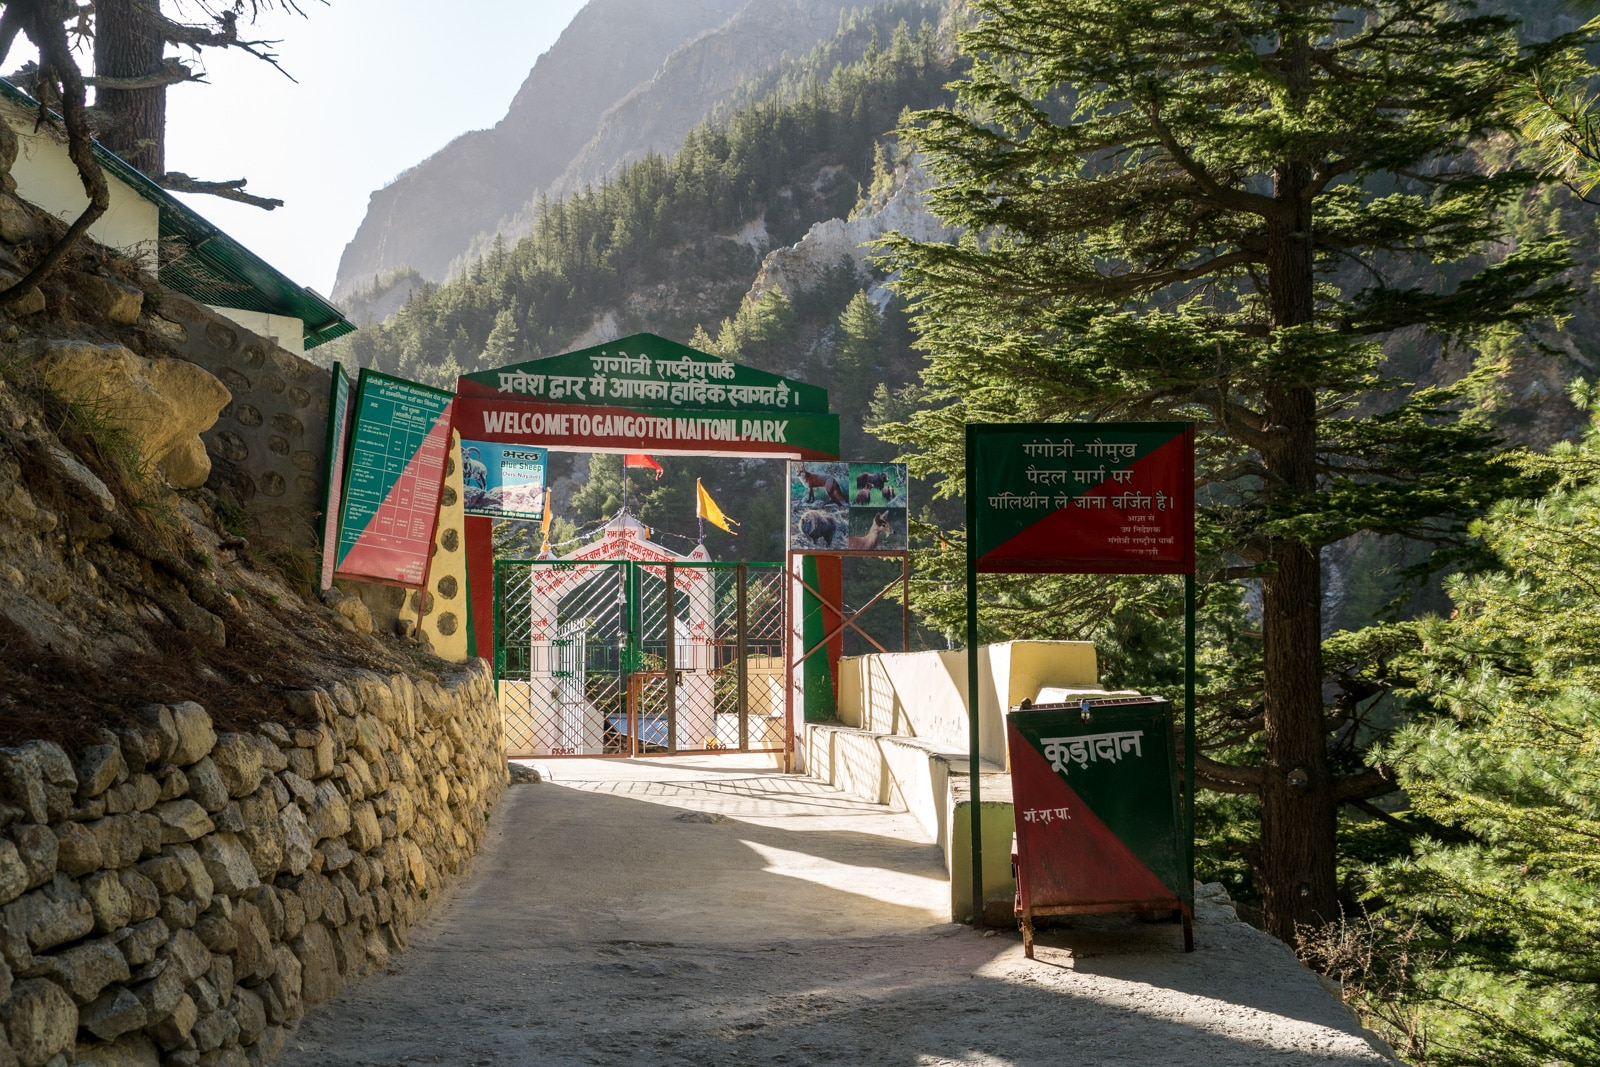 Guide to trekking to the start of the Ganges River in Uttarakhand, India - Entrance gate and check point to Gangotri National Park - Lost With Purpose travel blog